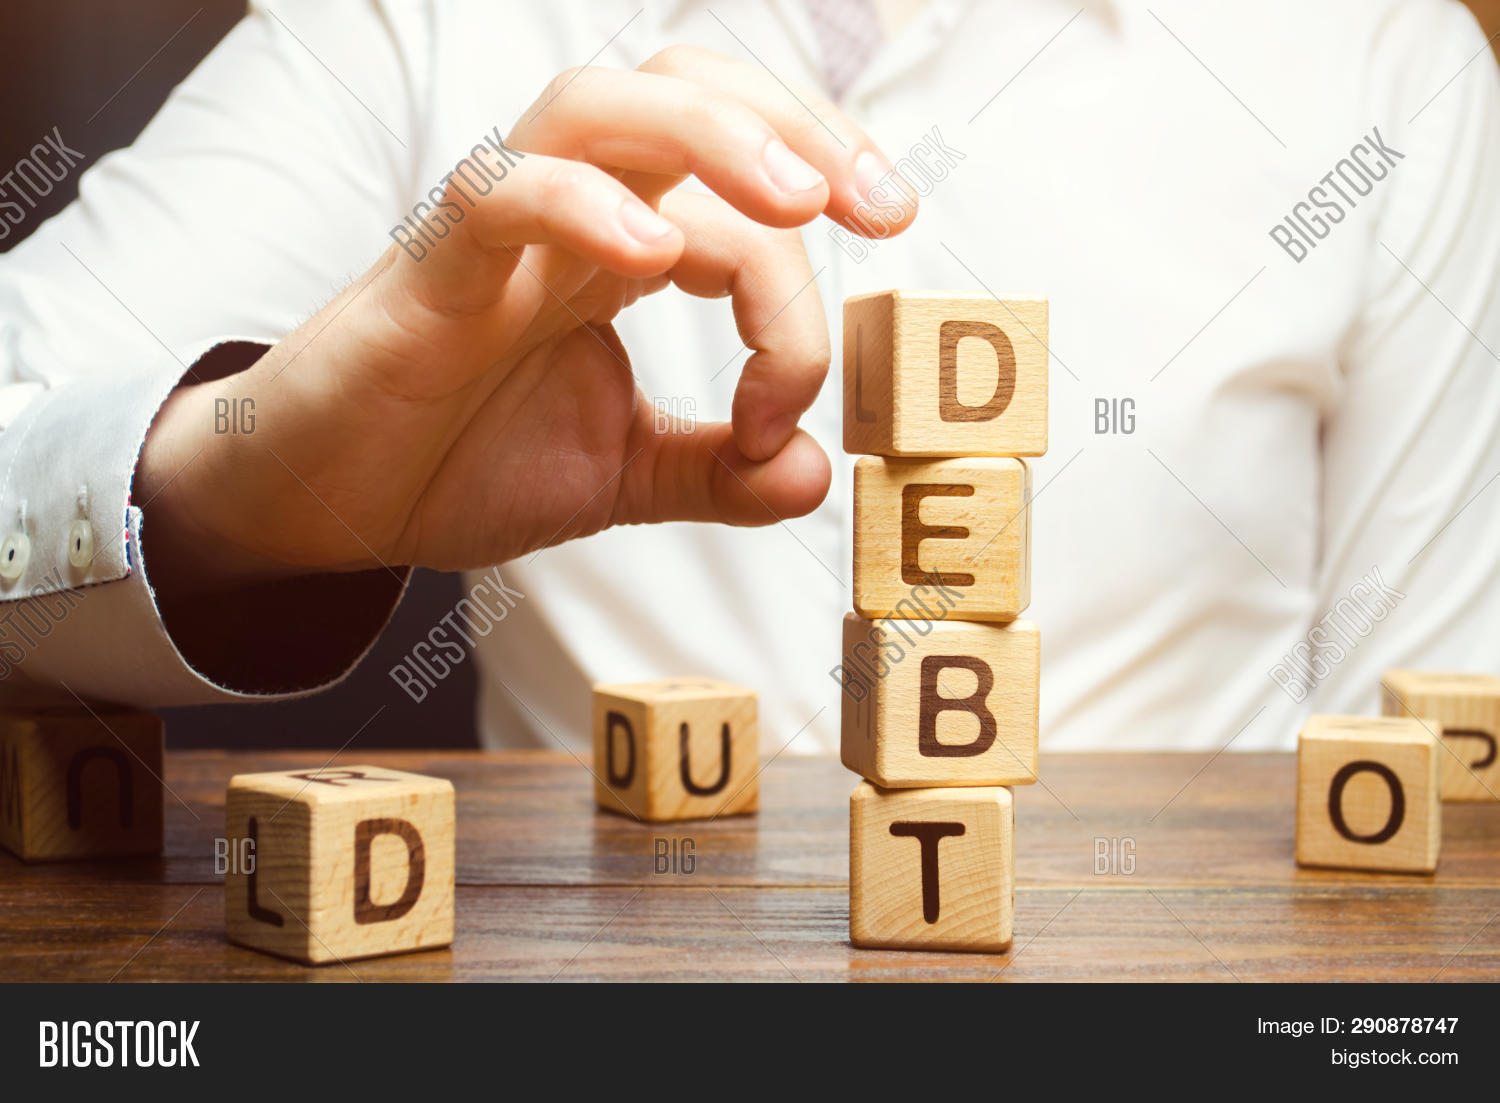 Businessman removes wooden blocks with the word Debt. Reduction or restructuring of debt. Bankruptcy announcement. Refusal to pay debts or loans and invalidate them. Debts service relief